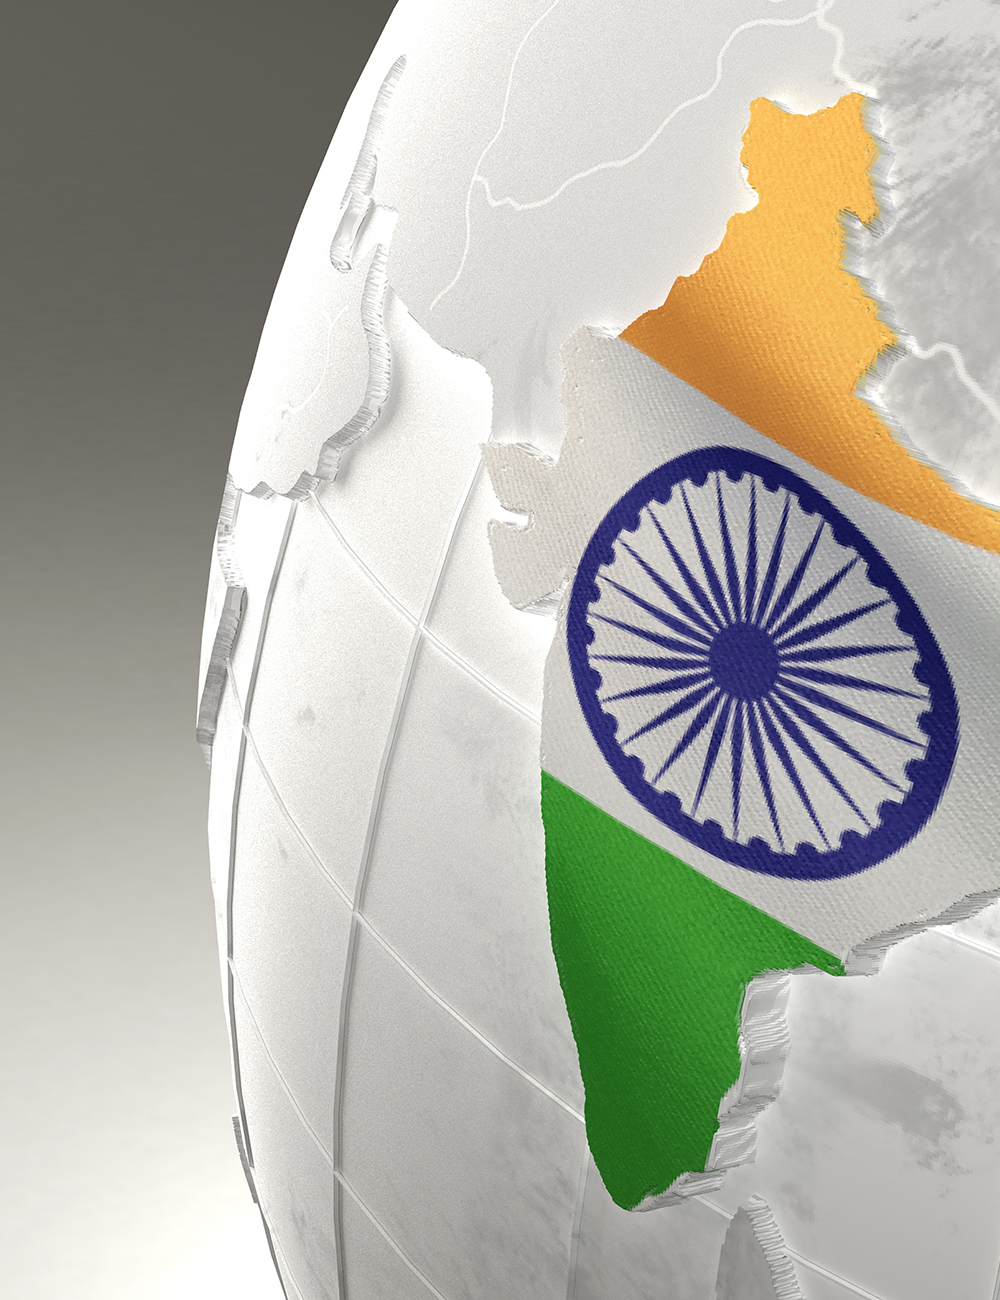 India and the world